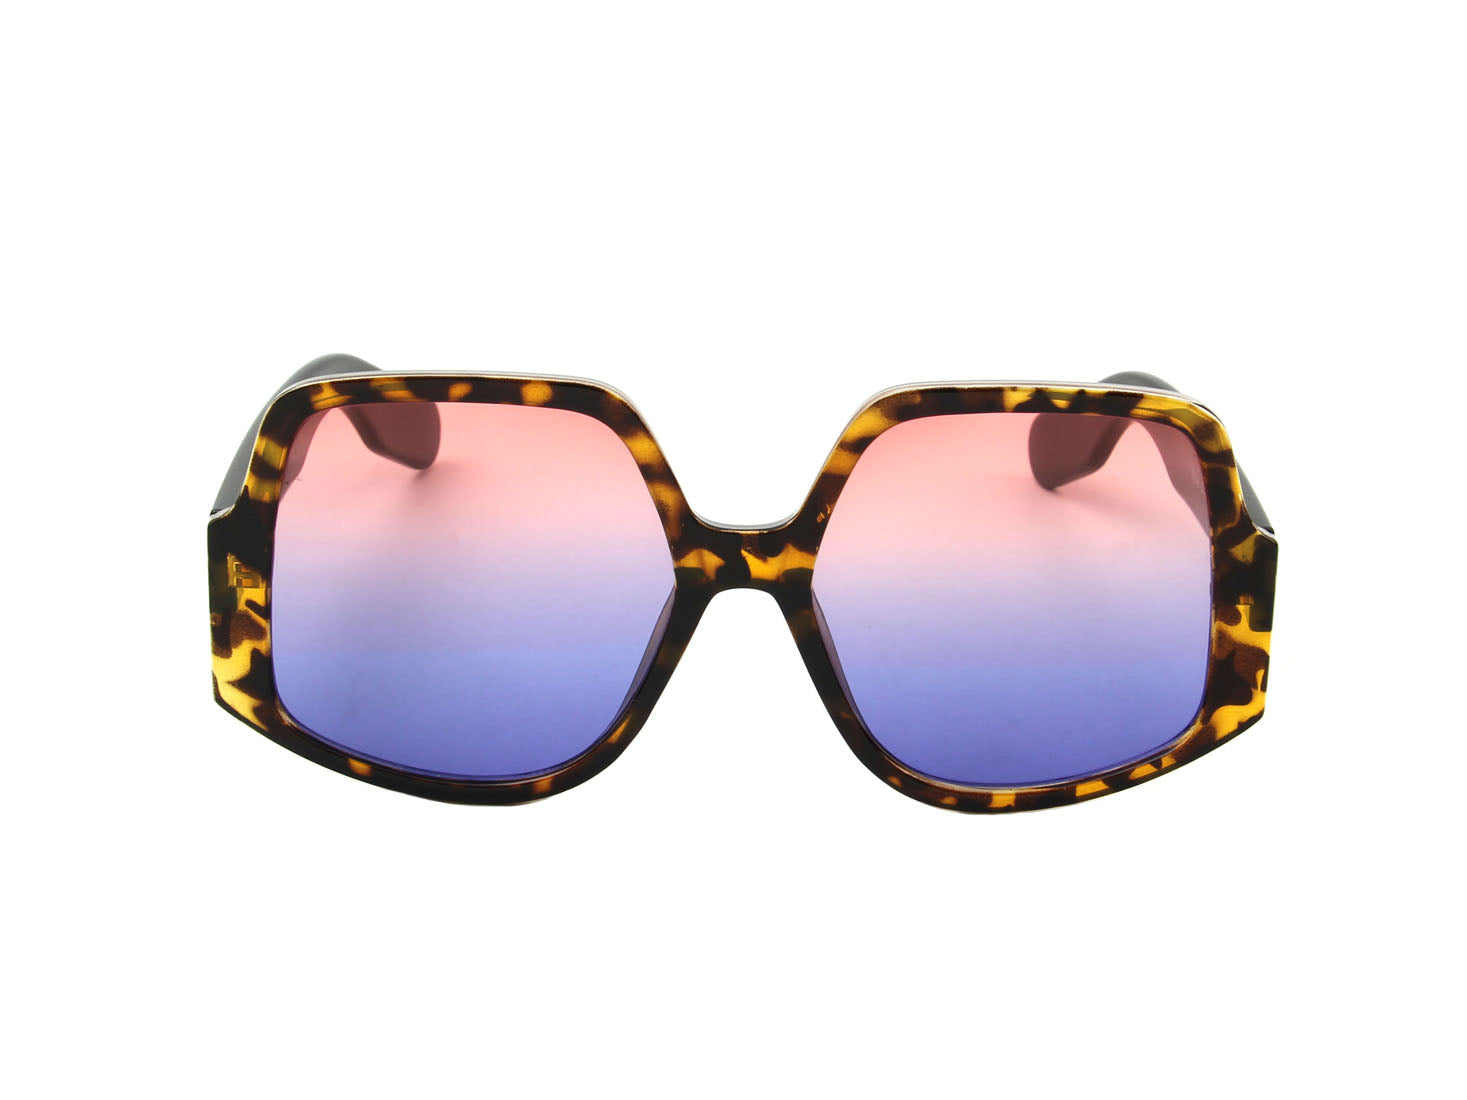 S1146 - Women Square Oversize Fashion Sunglasses